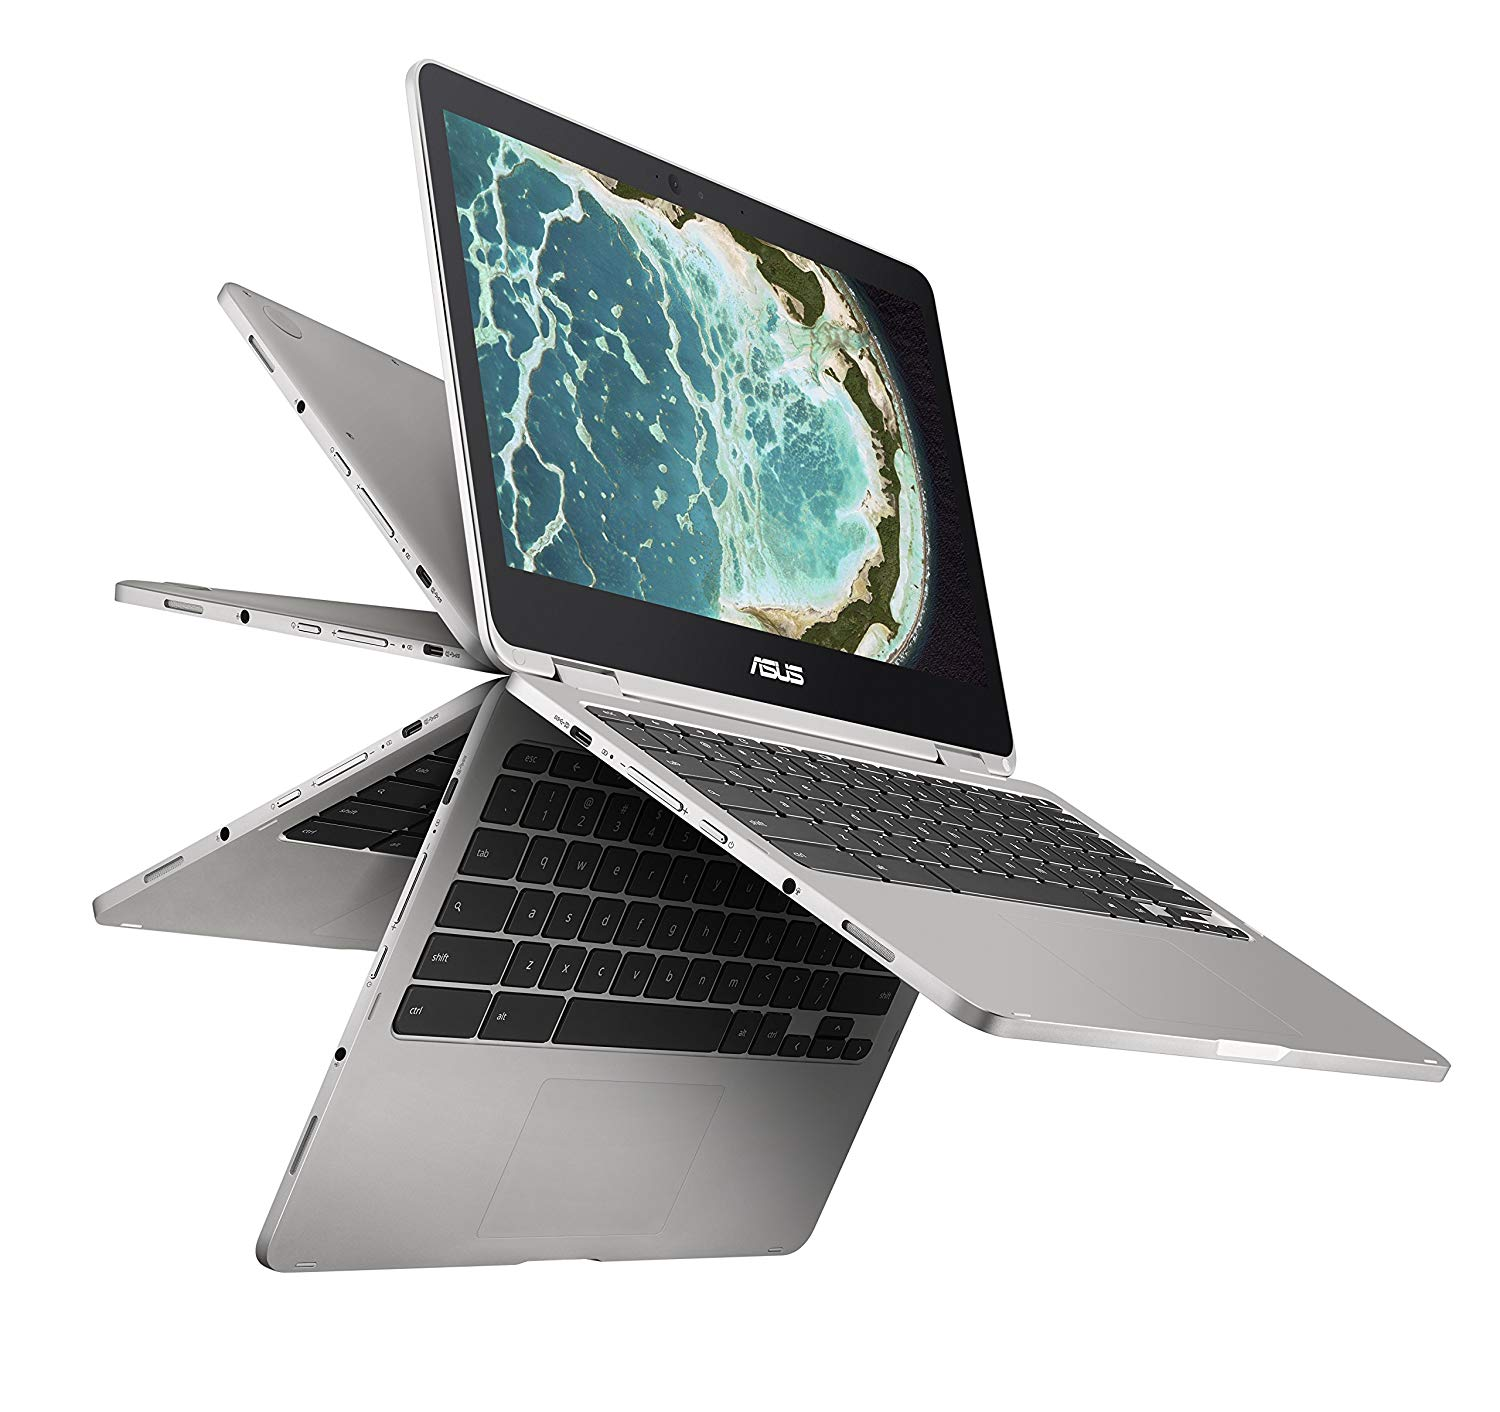 Home-school Computer: Chromebook Flip 12.5-inch Touchscreen Convertible Chromebook, Intel Core m3, 4GB RAM, 64GB Flash Storage, All-Metal Body, USB Type C, Corning Gorilla Glass, Chrome OS